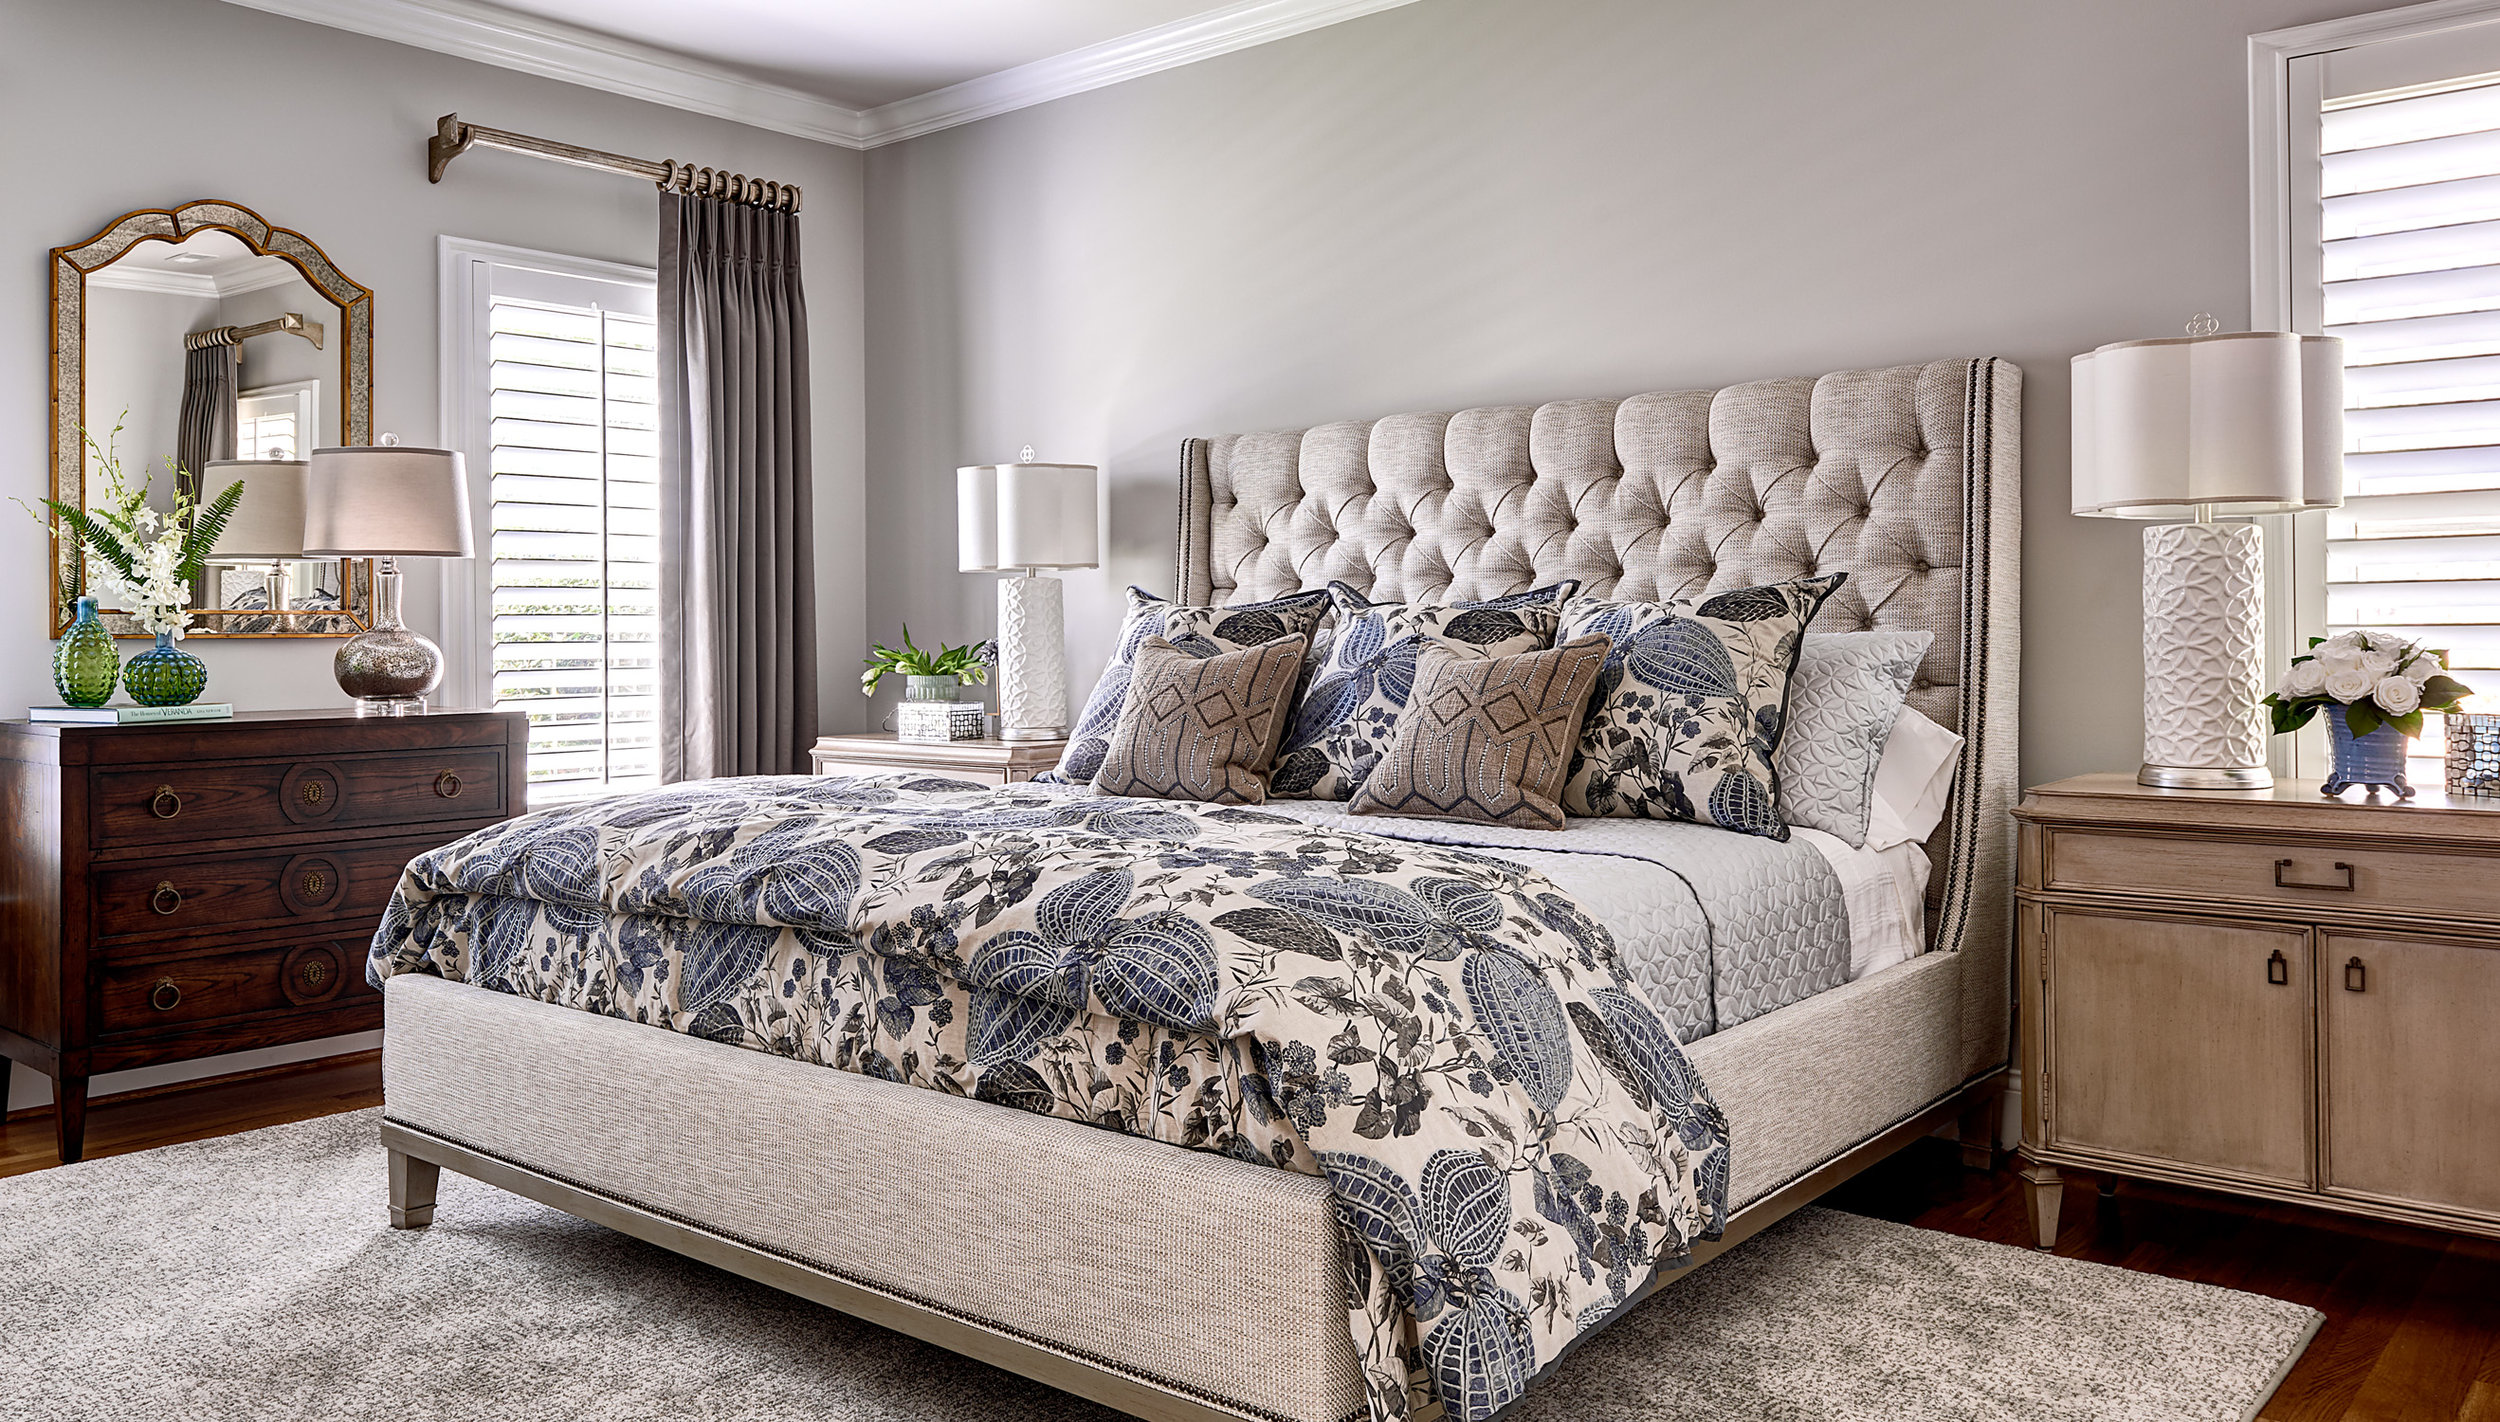 Bedroom with tufted headboard on upholstered king-size bed with blue and gray leaf patterns on bedding and silk draperies